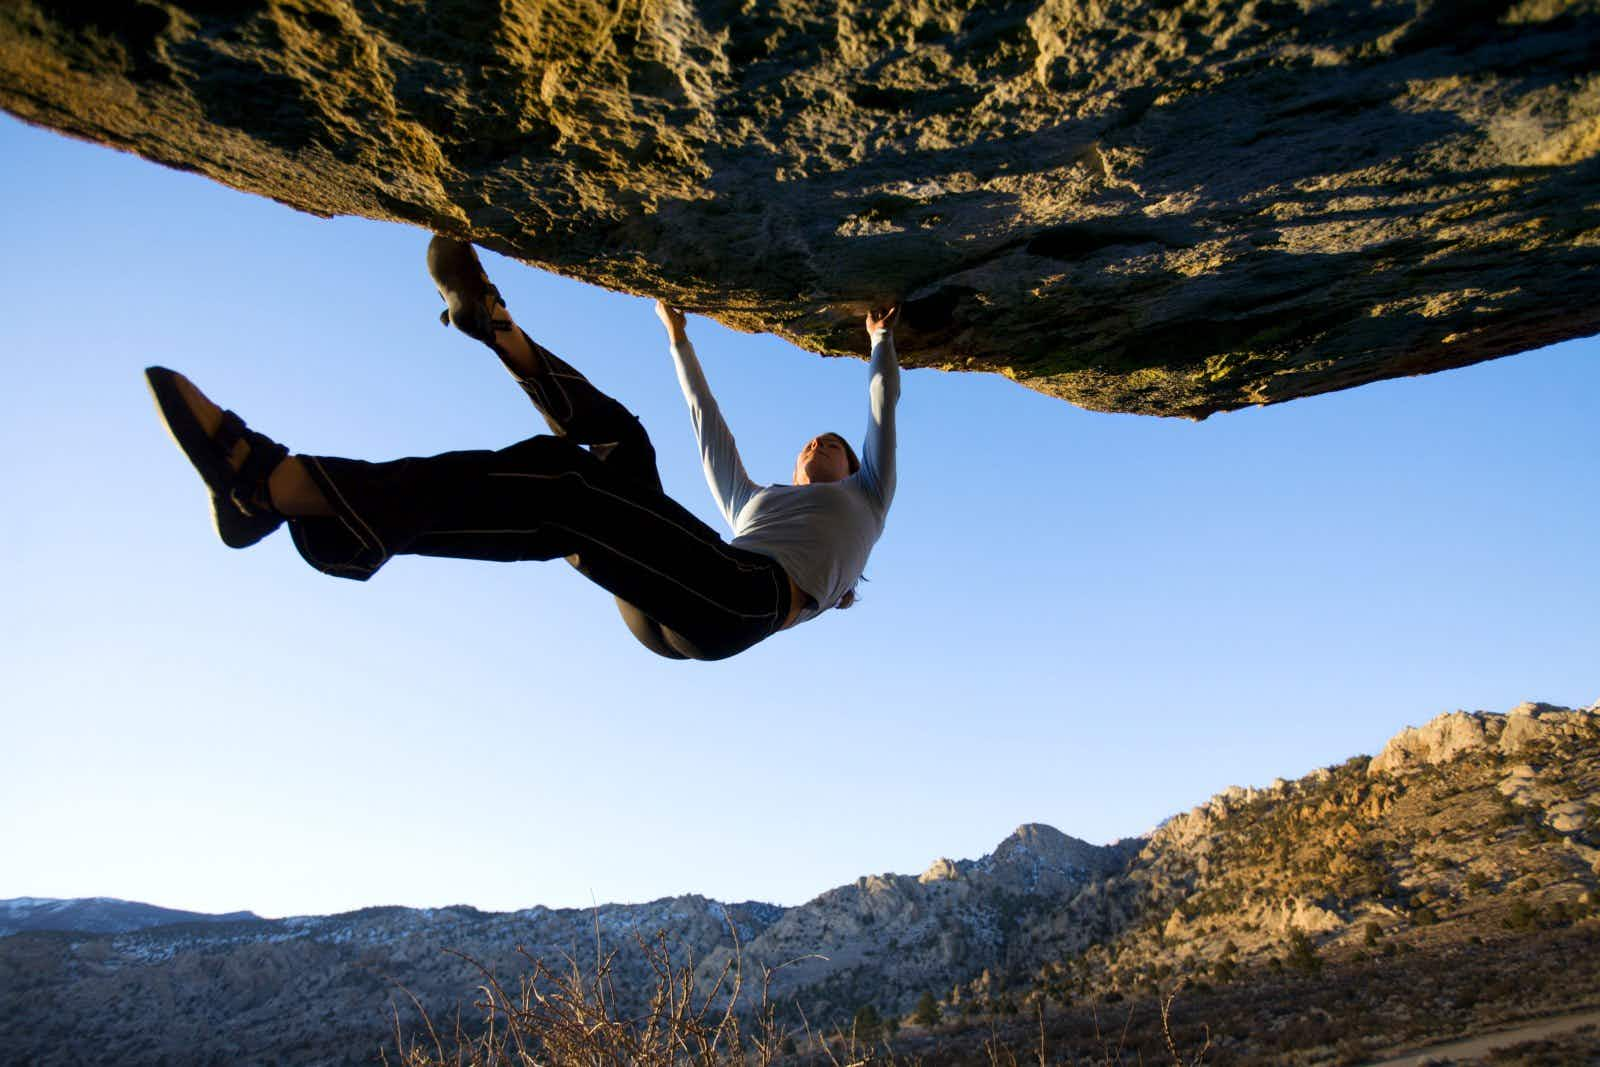 Woman bouldering on an overhang at the Buttermilk Boulders near Bishop California © Corey Rich / Getty Images